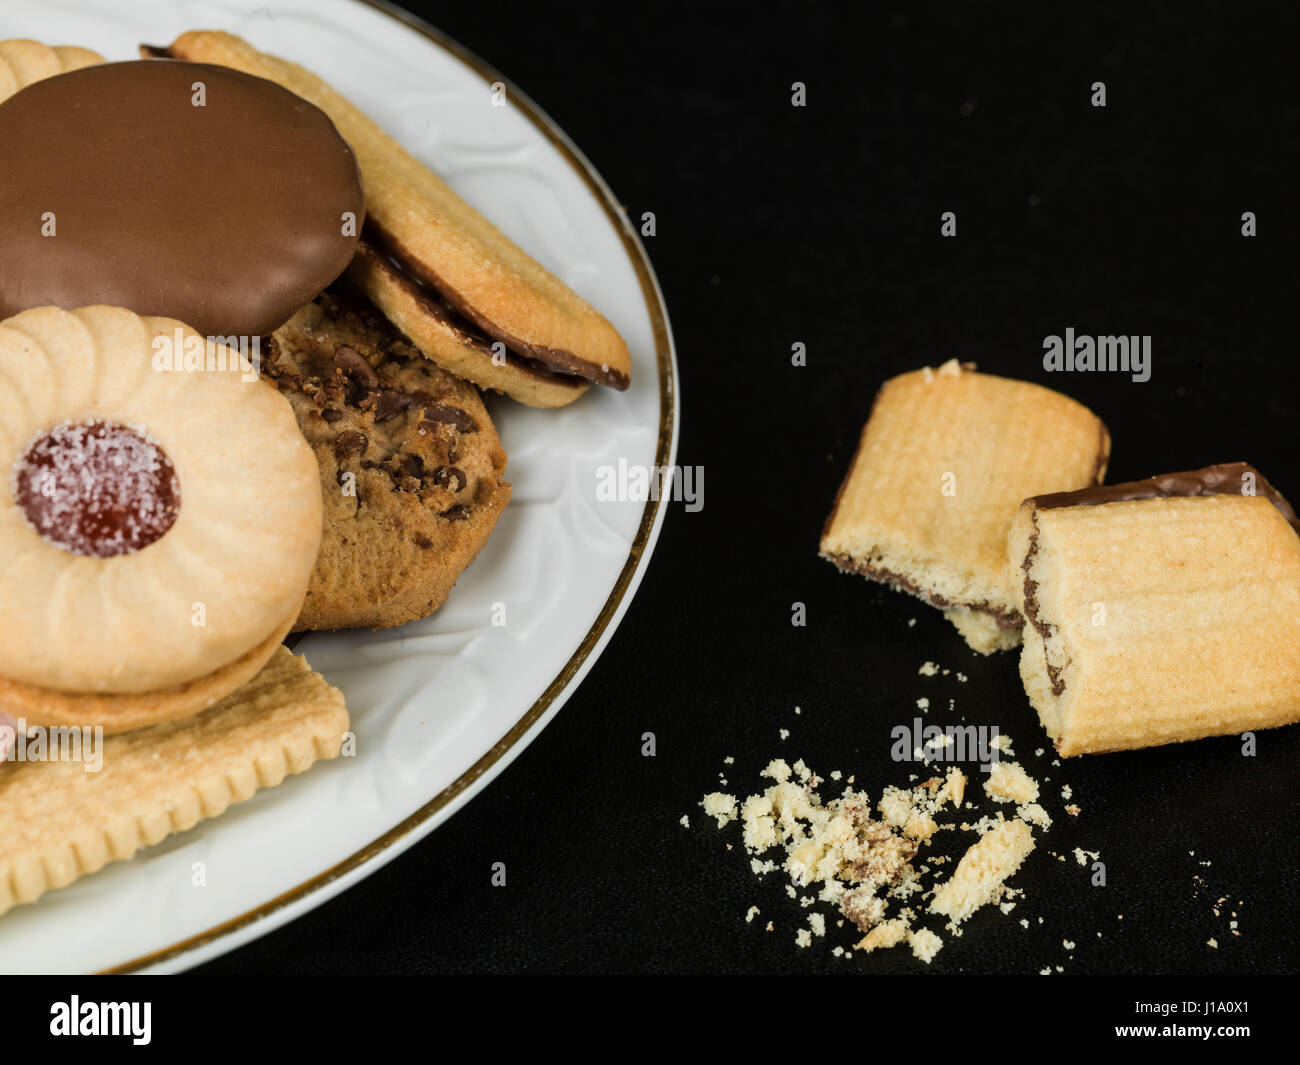 Selection of Teatime Biscuit Snacks Served on a Plate - Stock Image